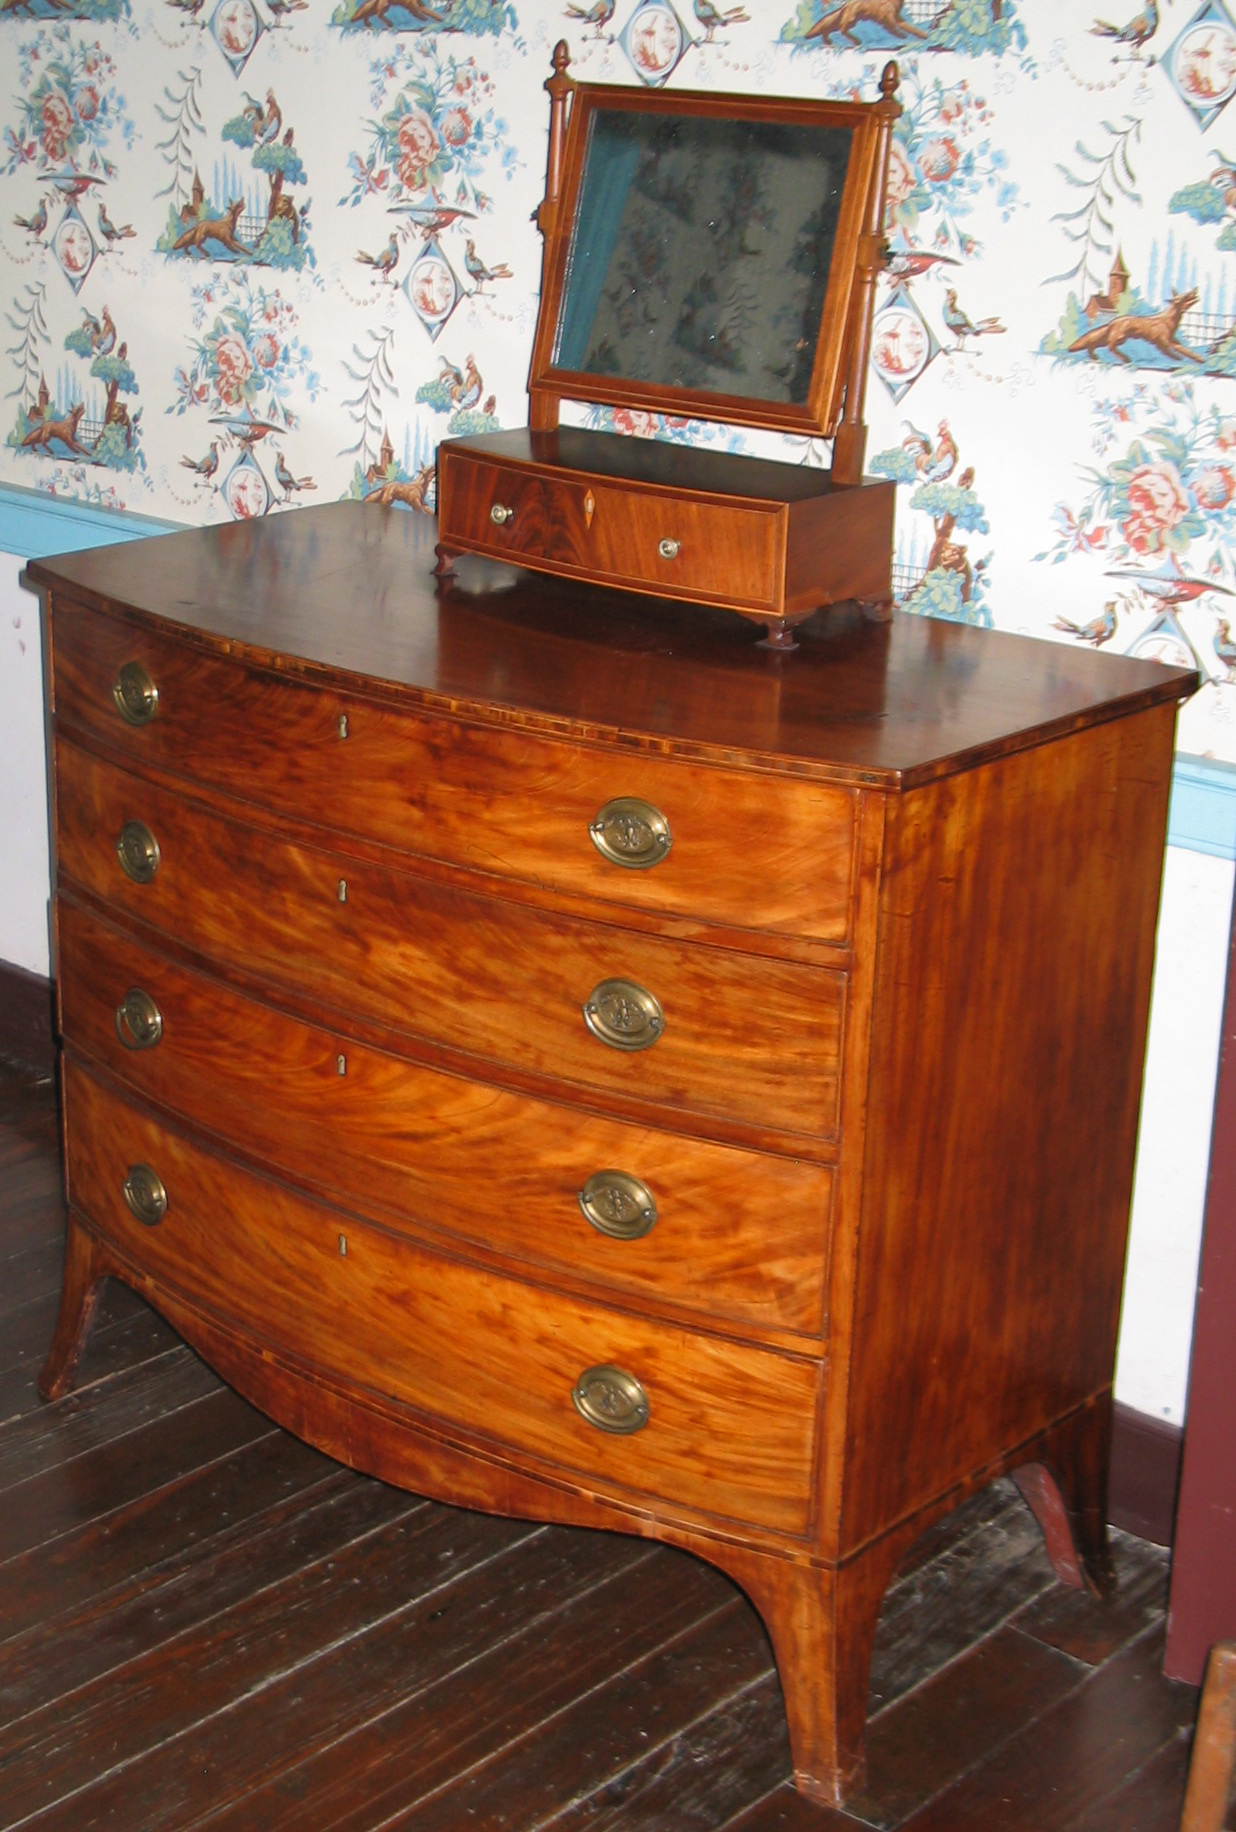 Spring Cleaning Basic Care And Maintenance For Antique Furniture Lynchburg Museum System